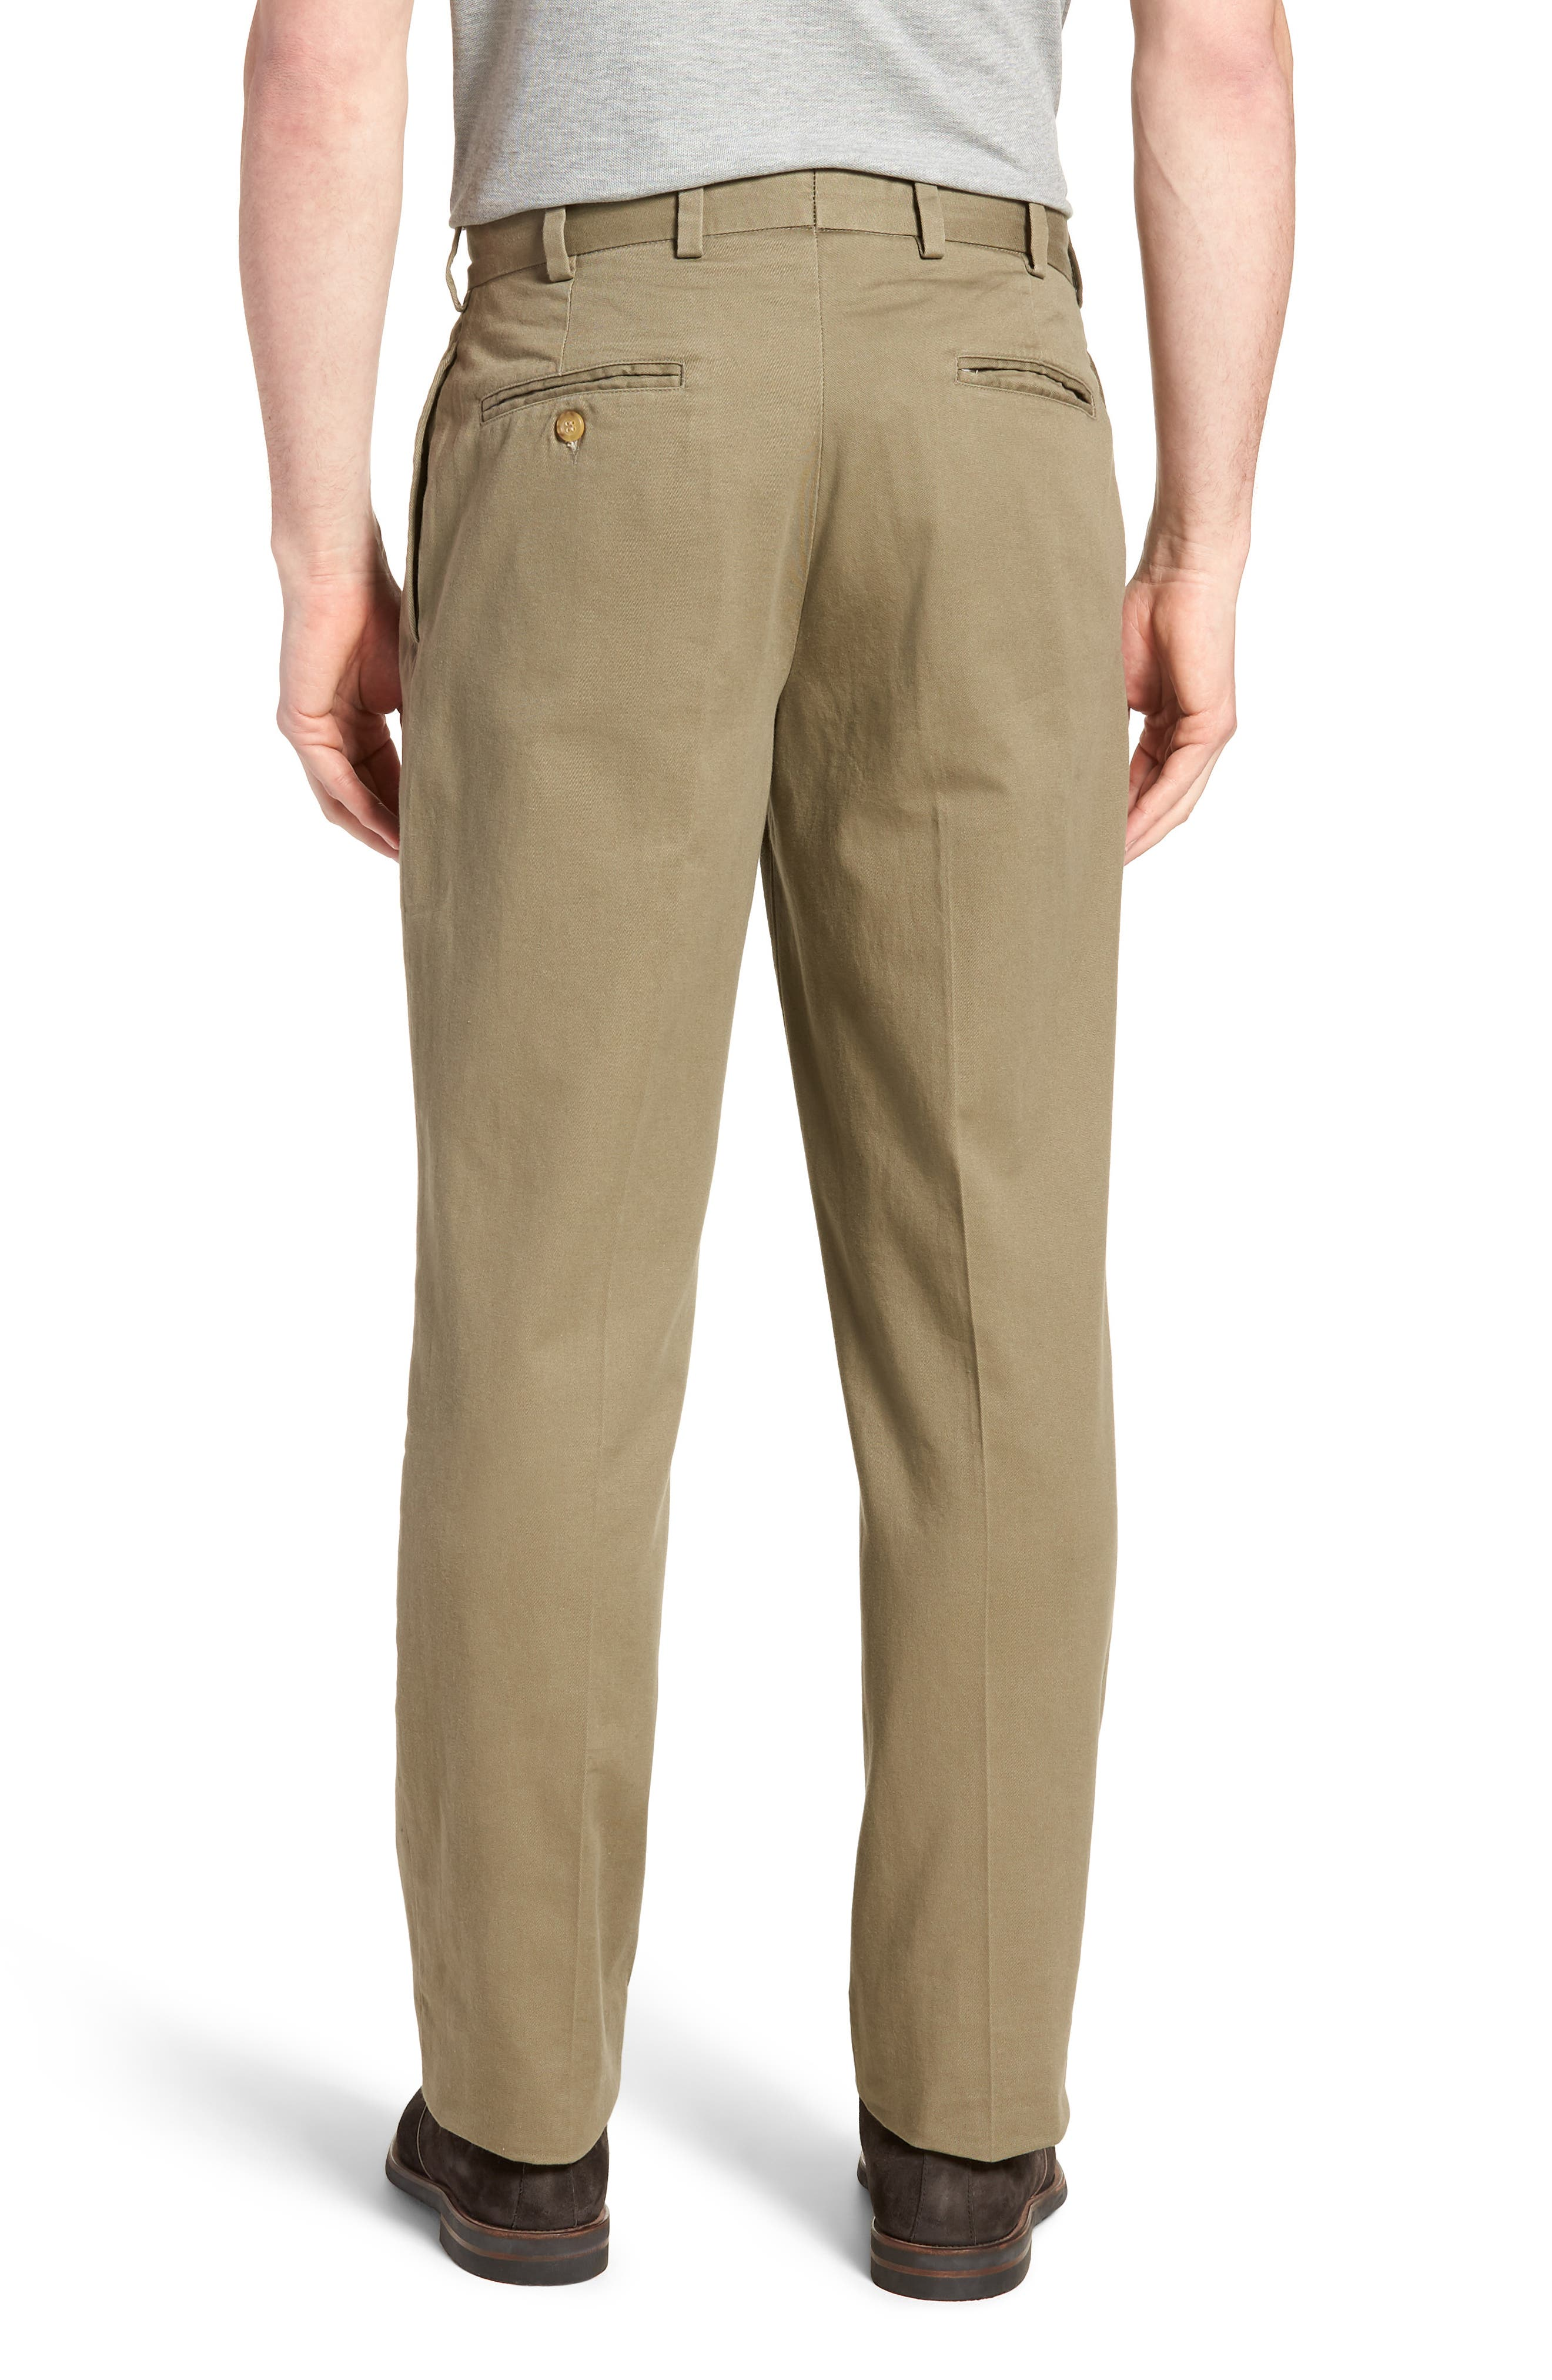 M2 Classic Fit Vintage Twill Pleated Pants,                             Alternate thumbnail 2, color,                             Olive